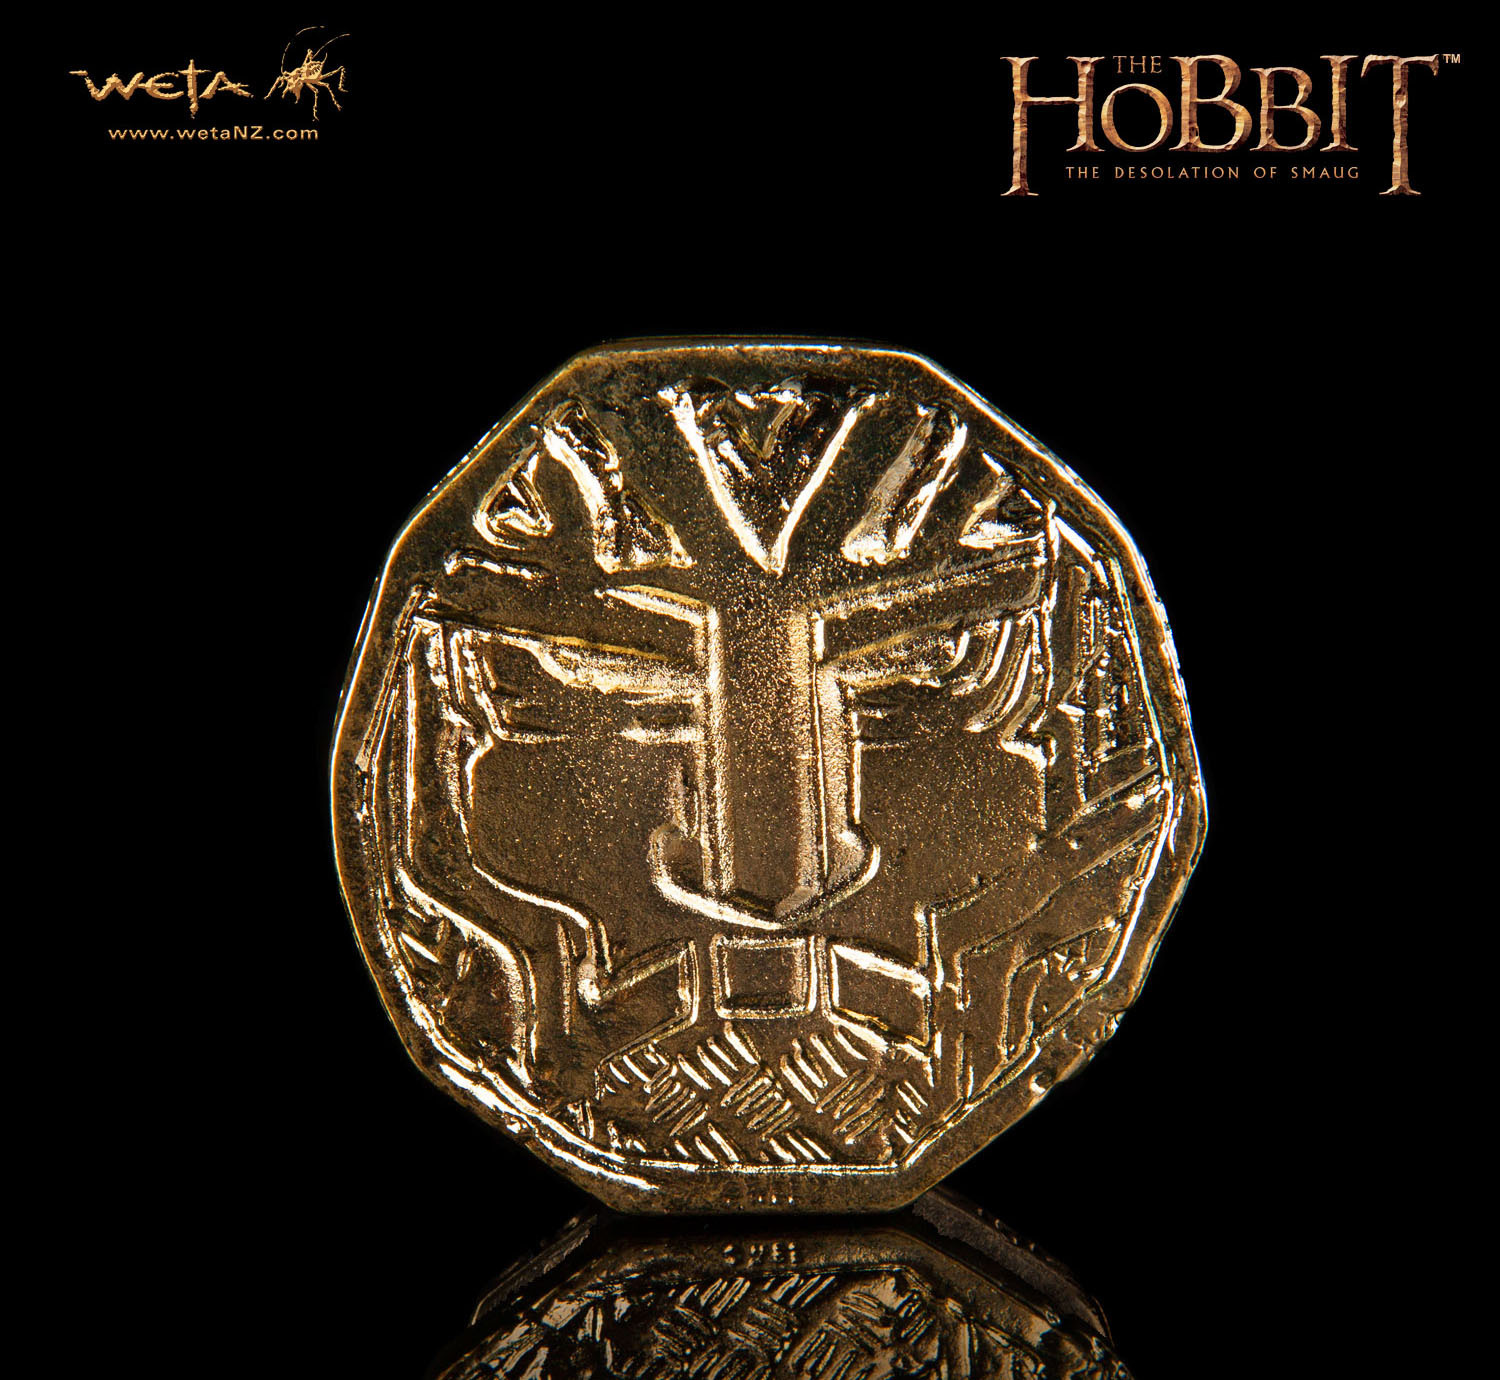 The Hobbit: Desolation of Smaug Treasure Coin #1 - by Weta image